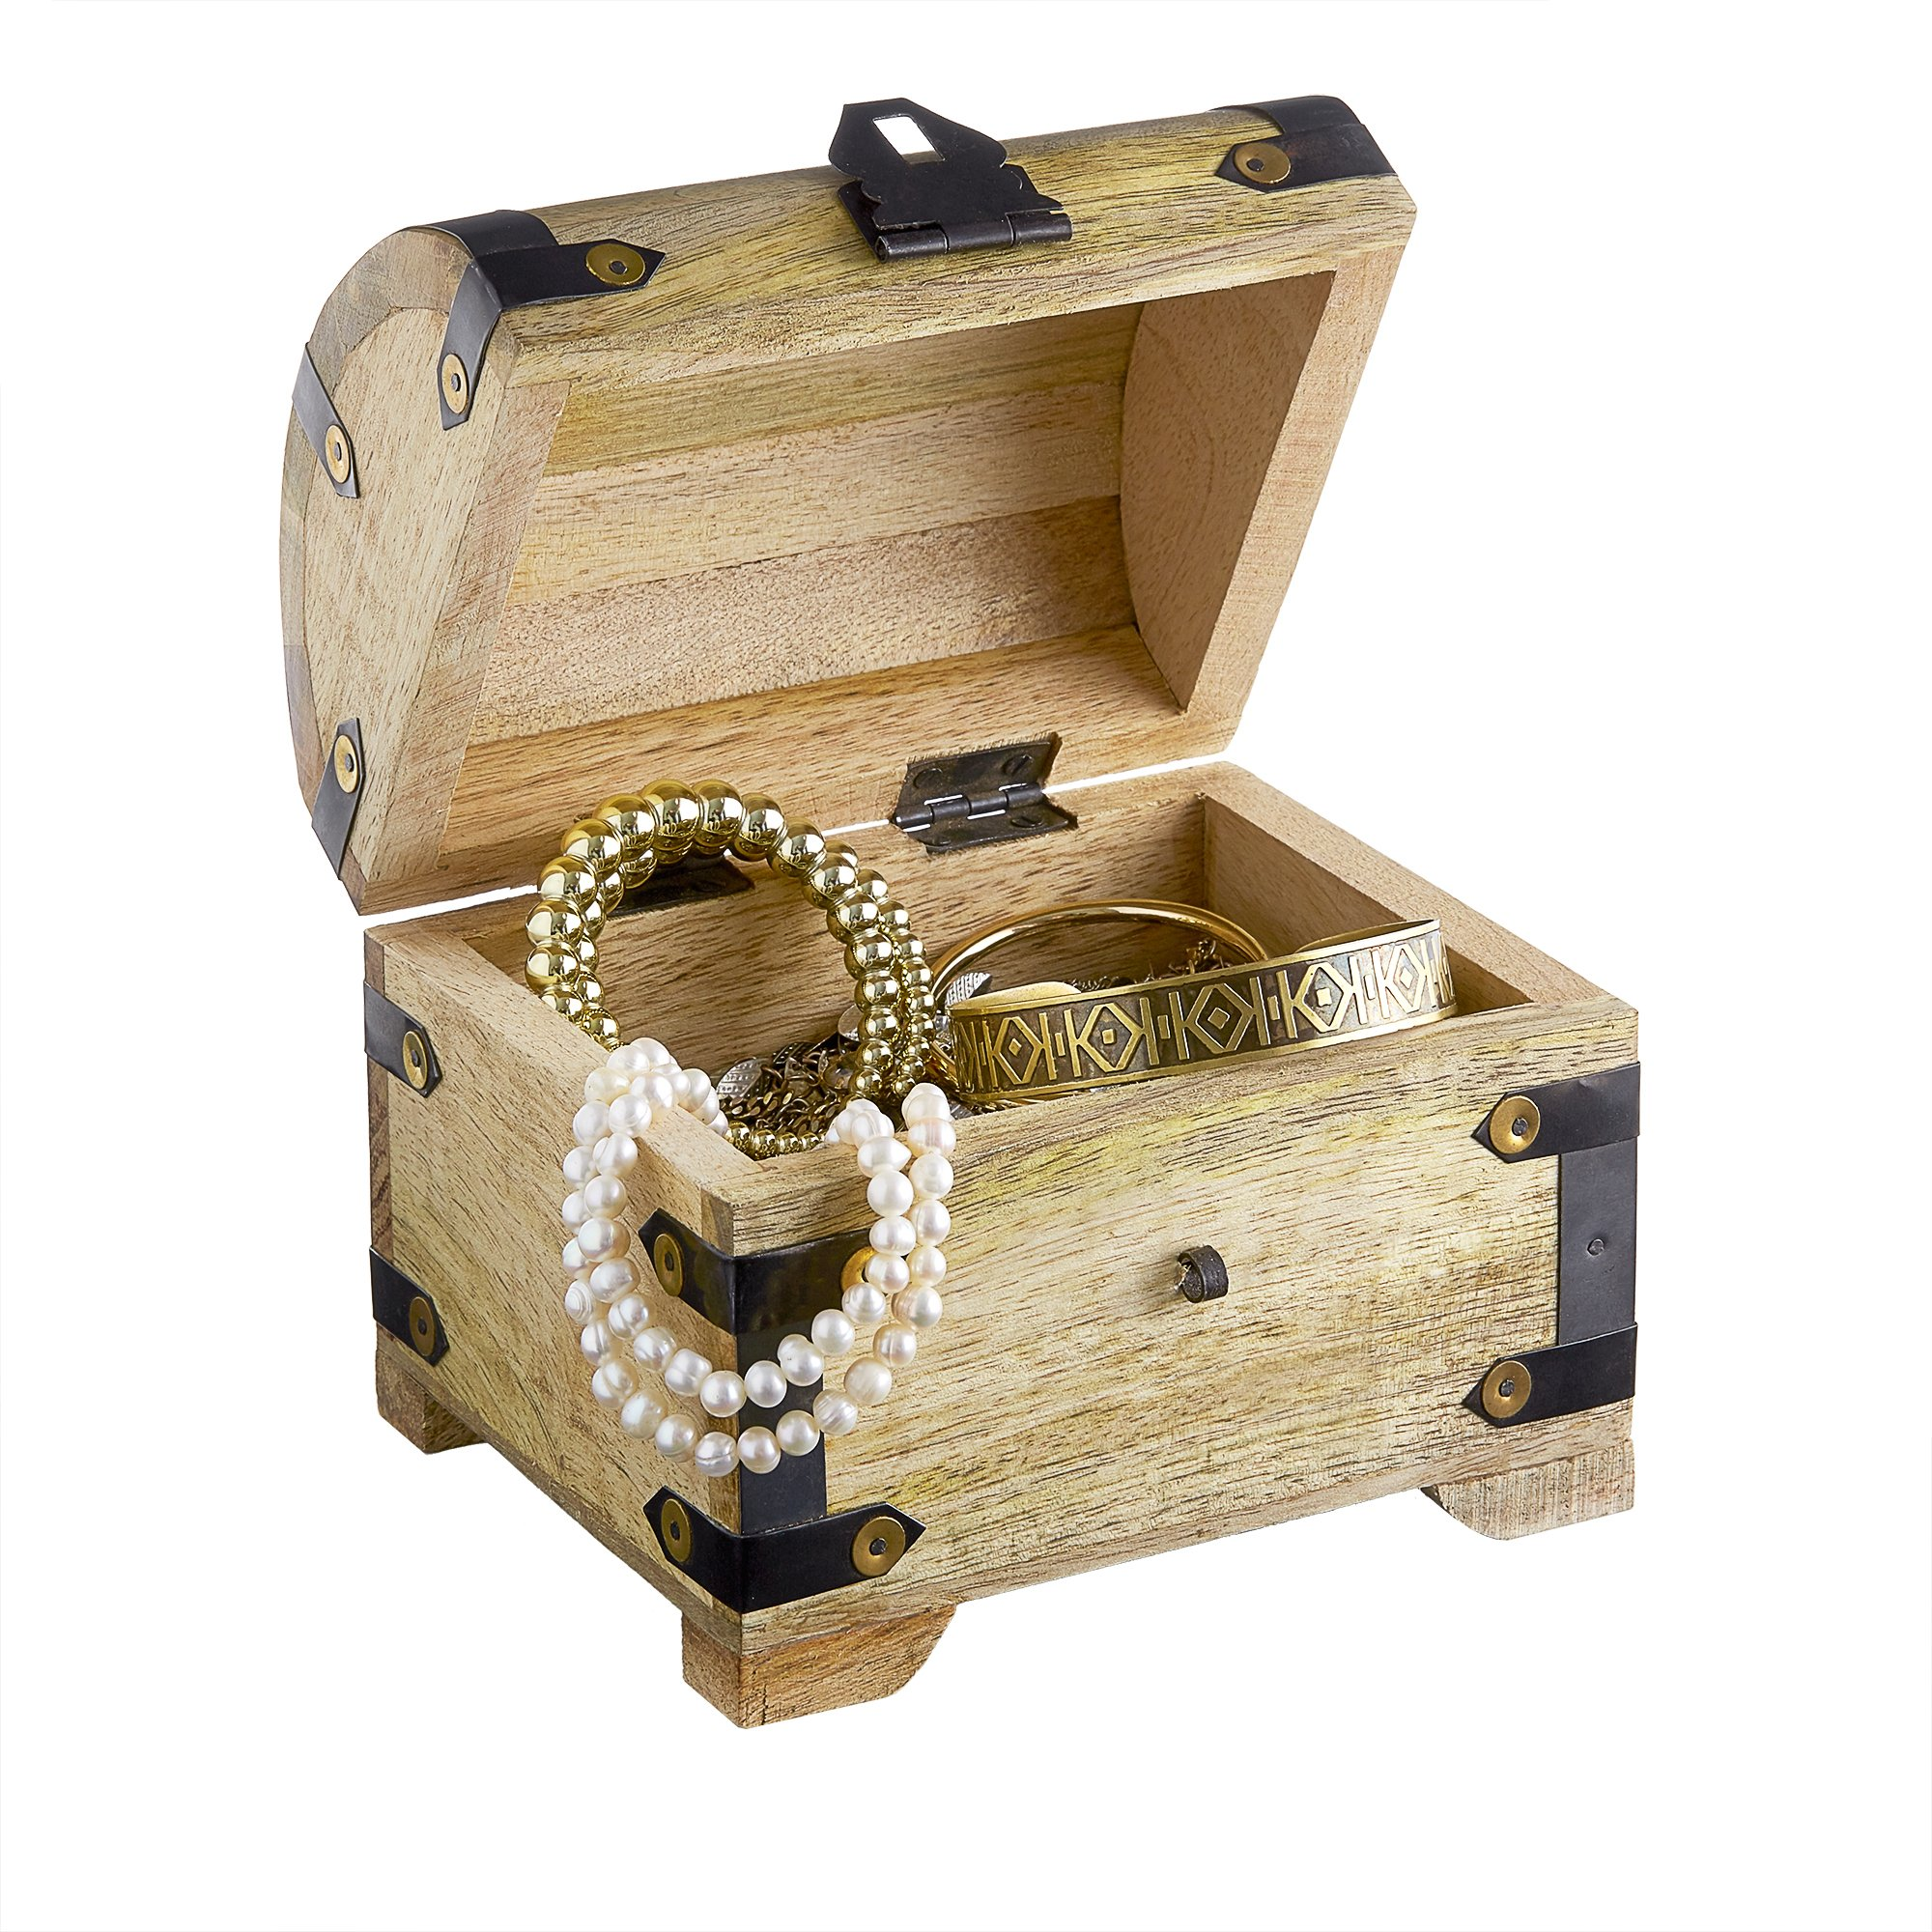 Jewelry Storage Box with Clasp - Treasure Chest - Vintage Chest - Light Wood - Pirate Chest - Original Gift Idea - LARGE - 5.5'' x 4.3'' x 5.2''